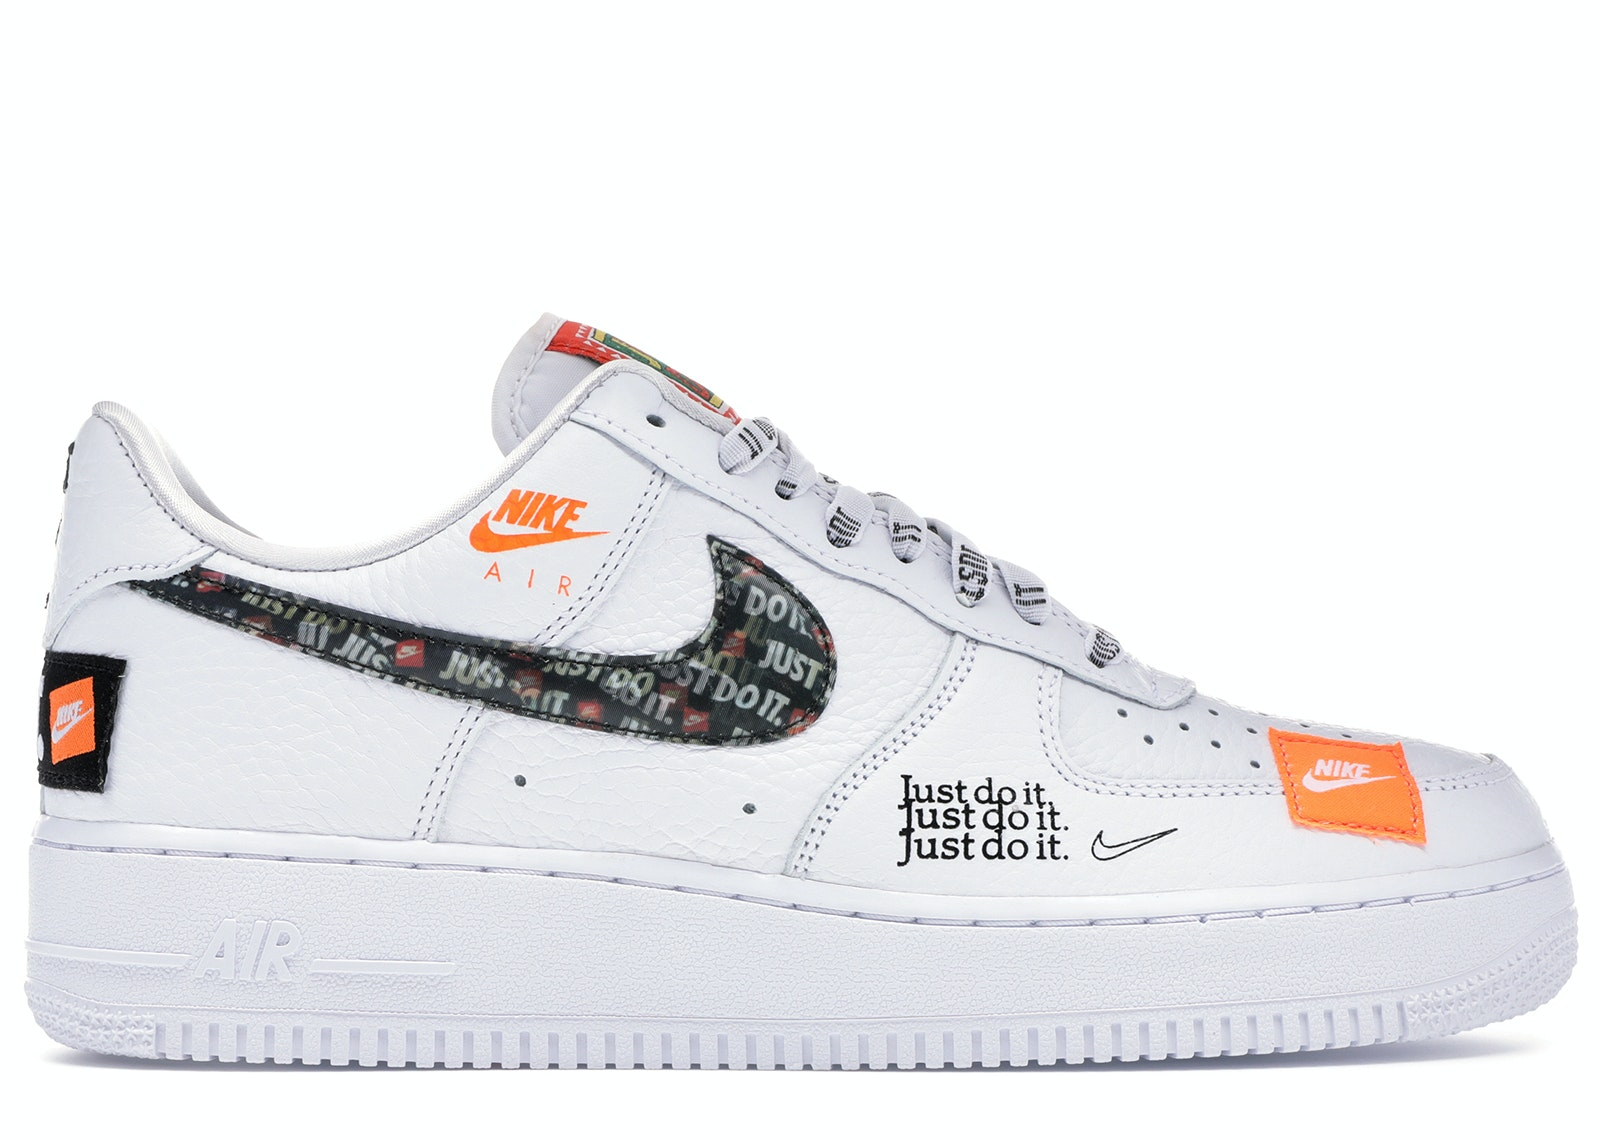 Air Force 1 Low Just Do It Pack White/Black